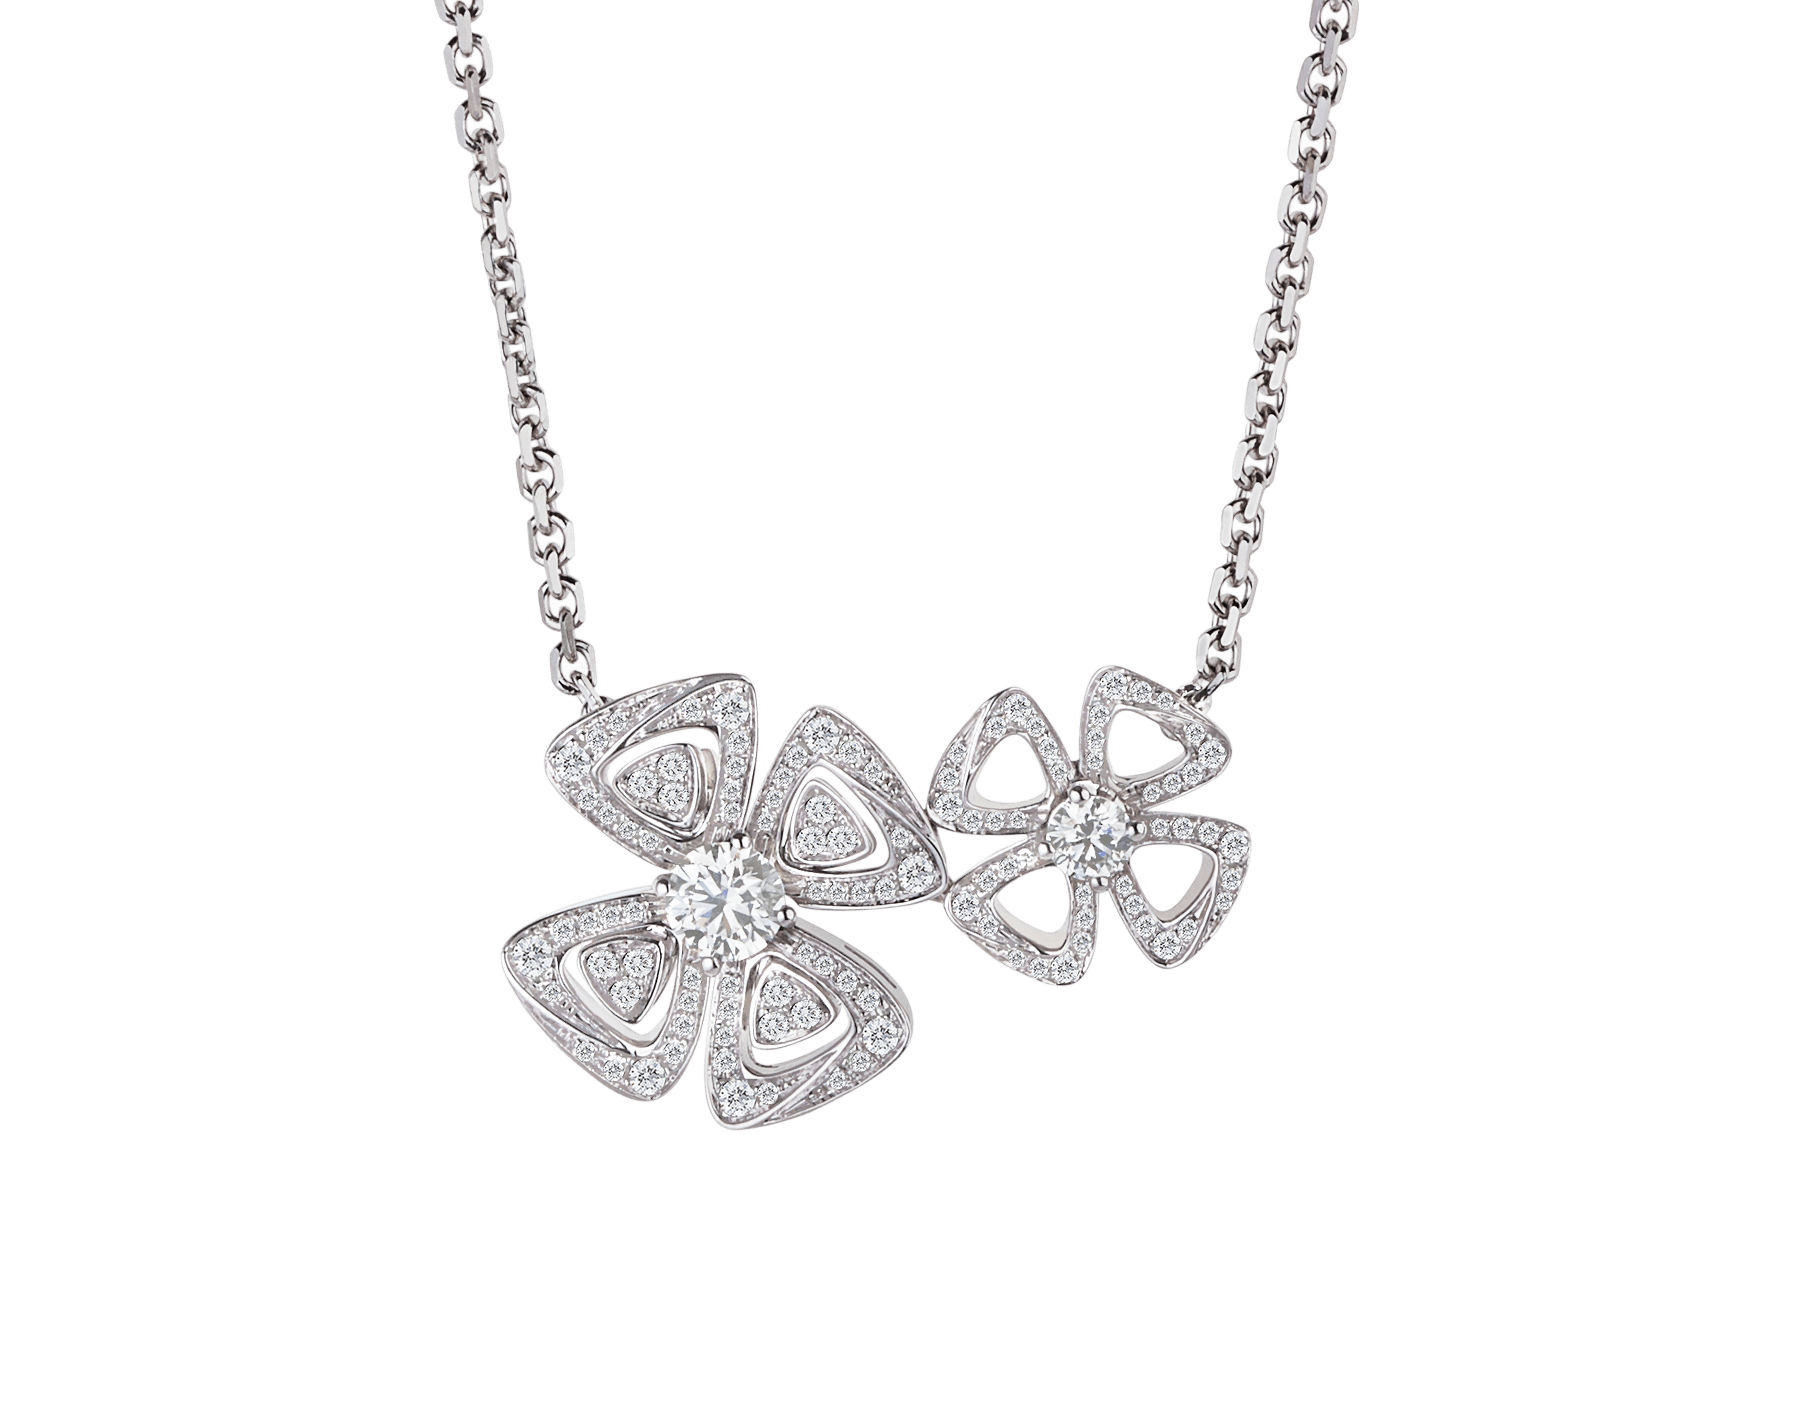 Fiorever two-flowers 18 kt white gold necklace set with two central diamonds (0.30 ct and 0.10 ct) and pavé diamonds (0.31 ct) 354498 image 1